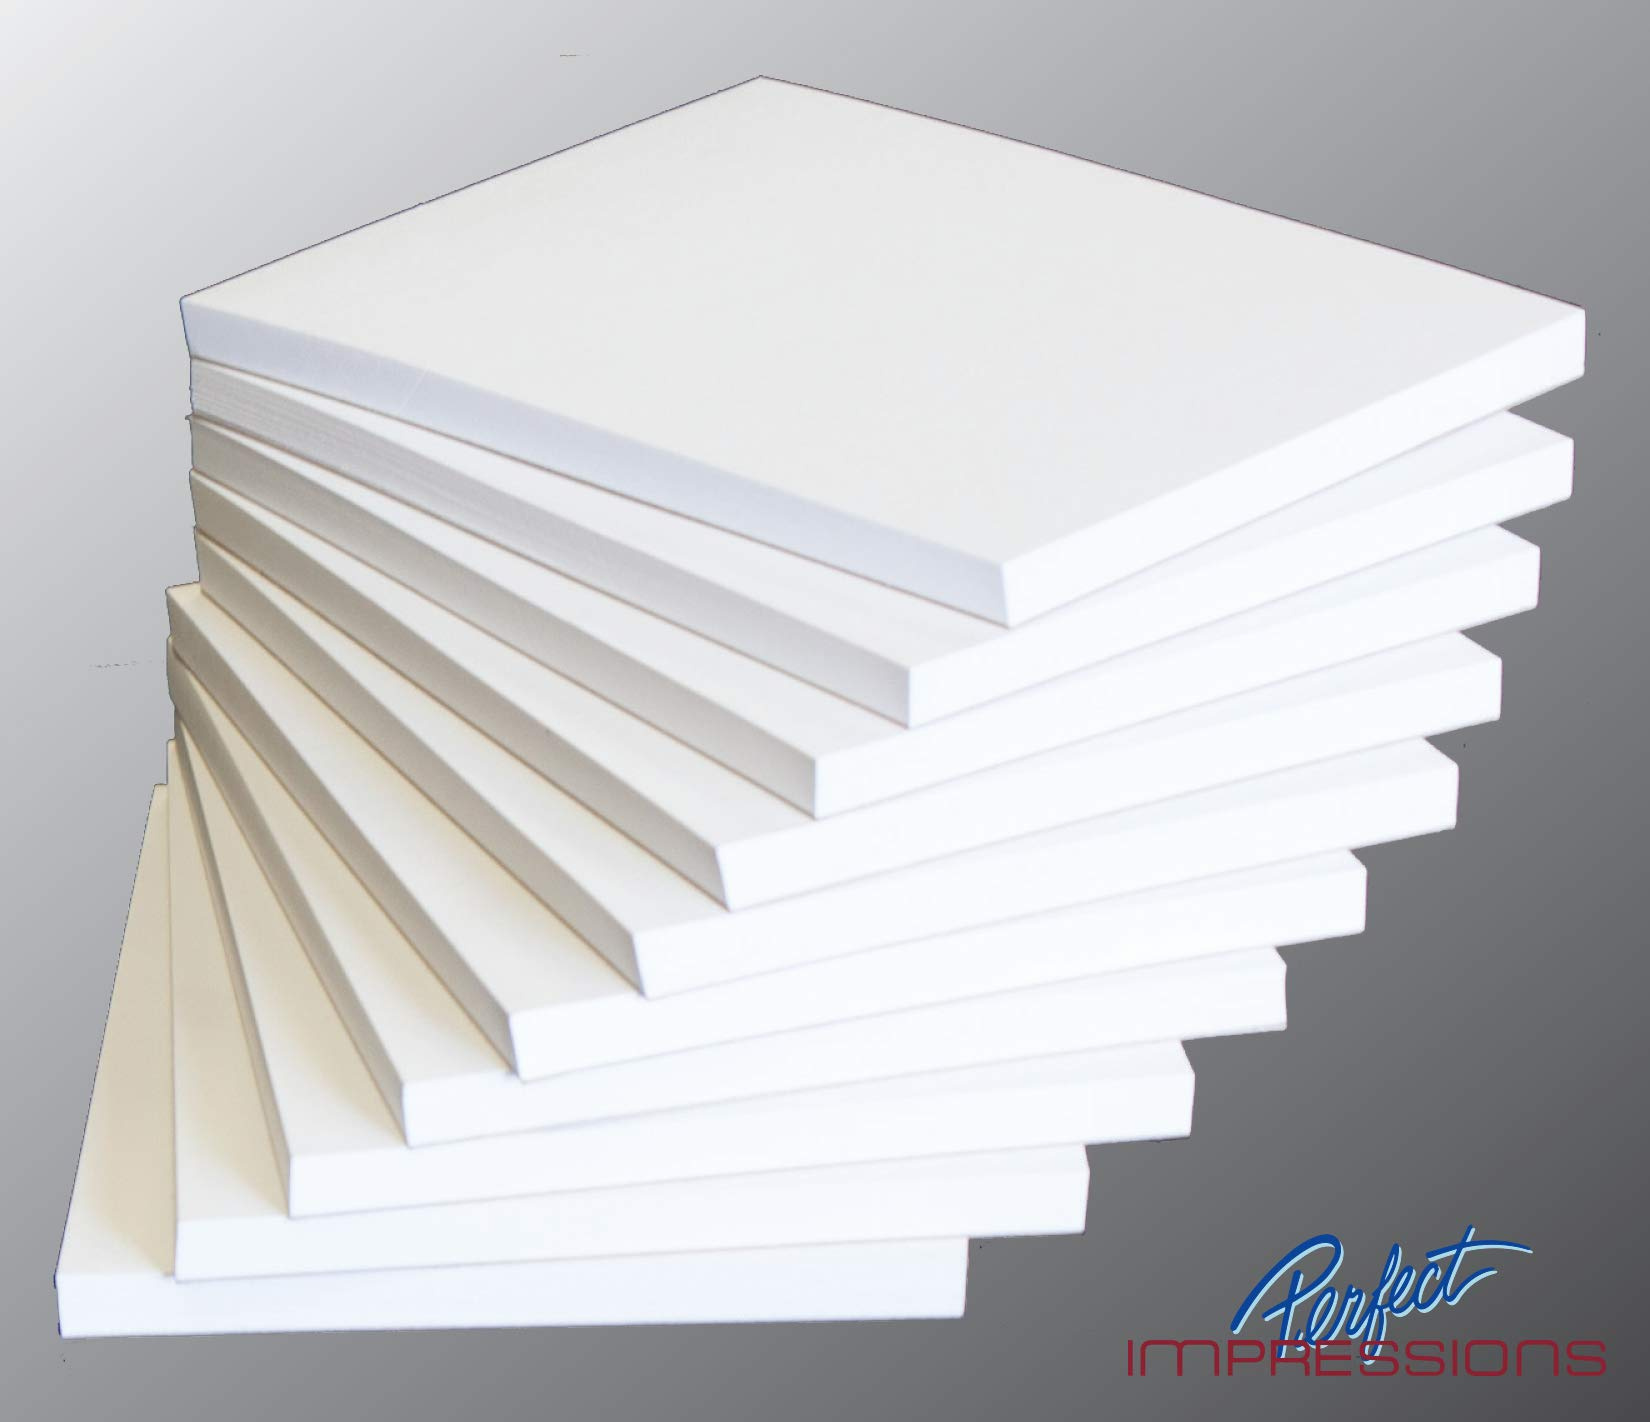 Note Pads - Memo Pads - Scratch Pads - Writing pad of 10 Packs with 50 sheets each! (3-x-5-inch)